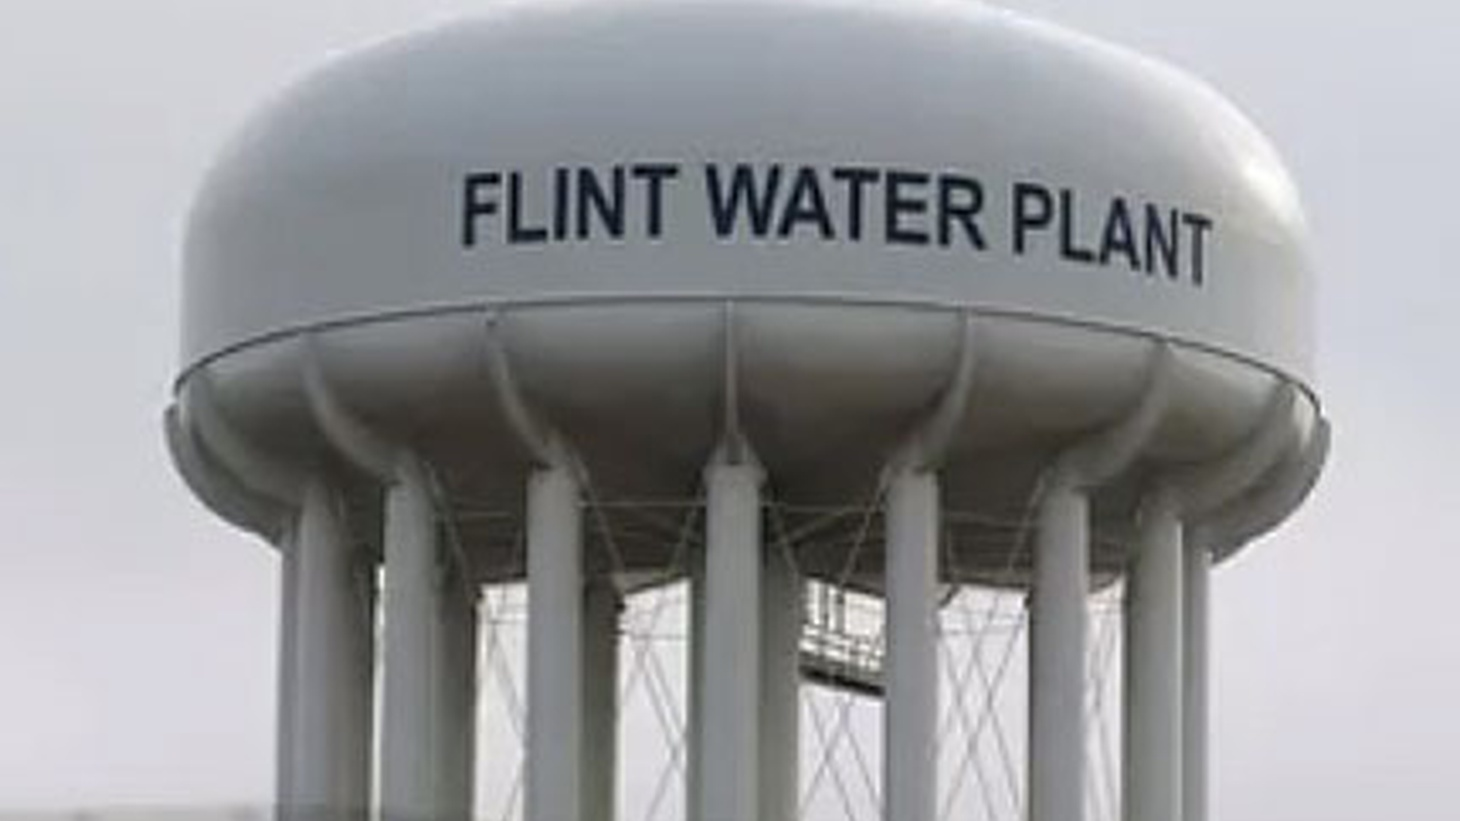 Four former city officials in Flint Michigan are facing criminal charges today over the city's water crisis, which exposed residents to dangerous levels of lead. That brings the total to 13 brought up on criminal charges in the scandal. Flint has stayed in the headlines but it isn't the only American community with a lead problem.